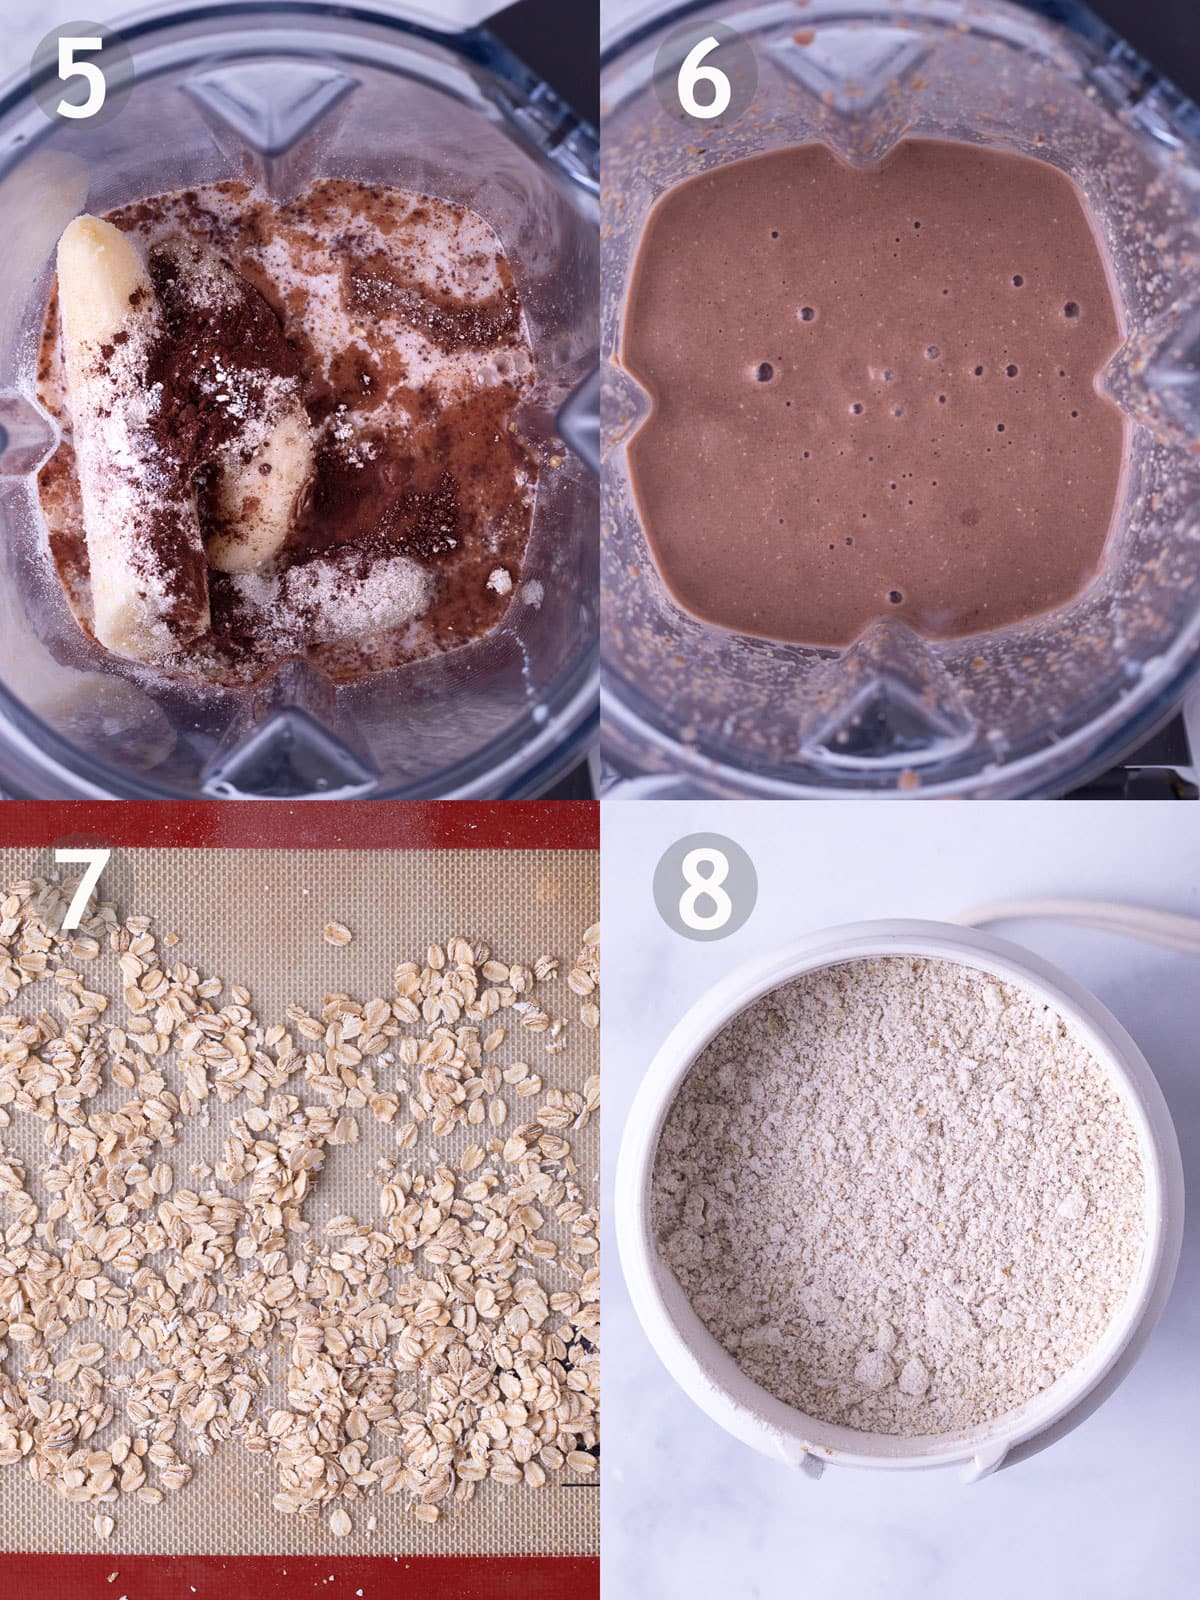 Before and after photos of blending ingredients for chocolate peanut butter banana oat smoothie and toasting and grinding the oats.